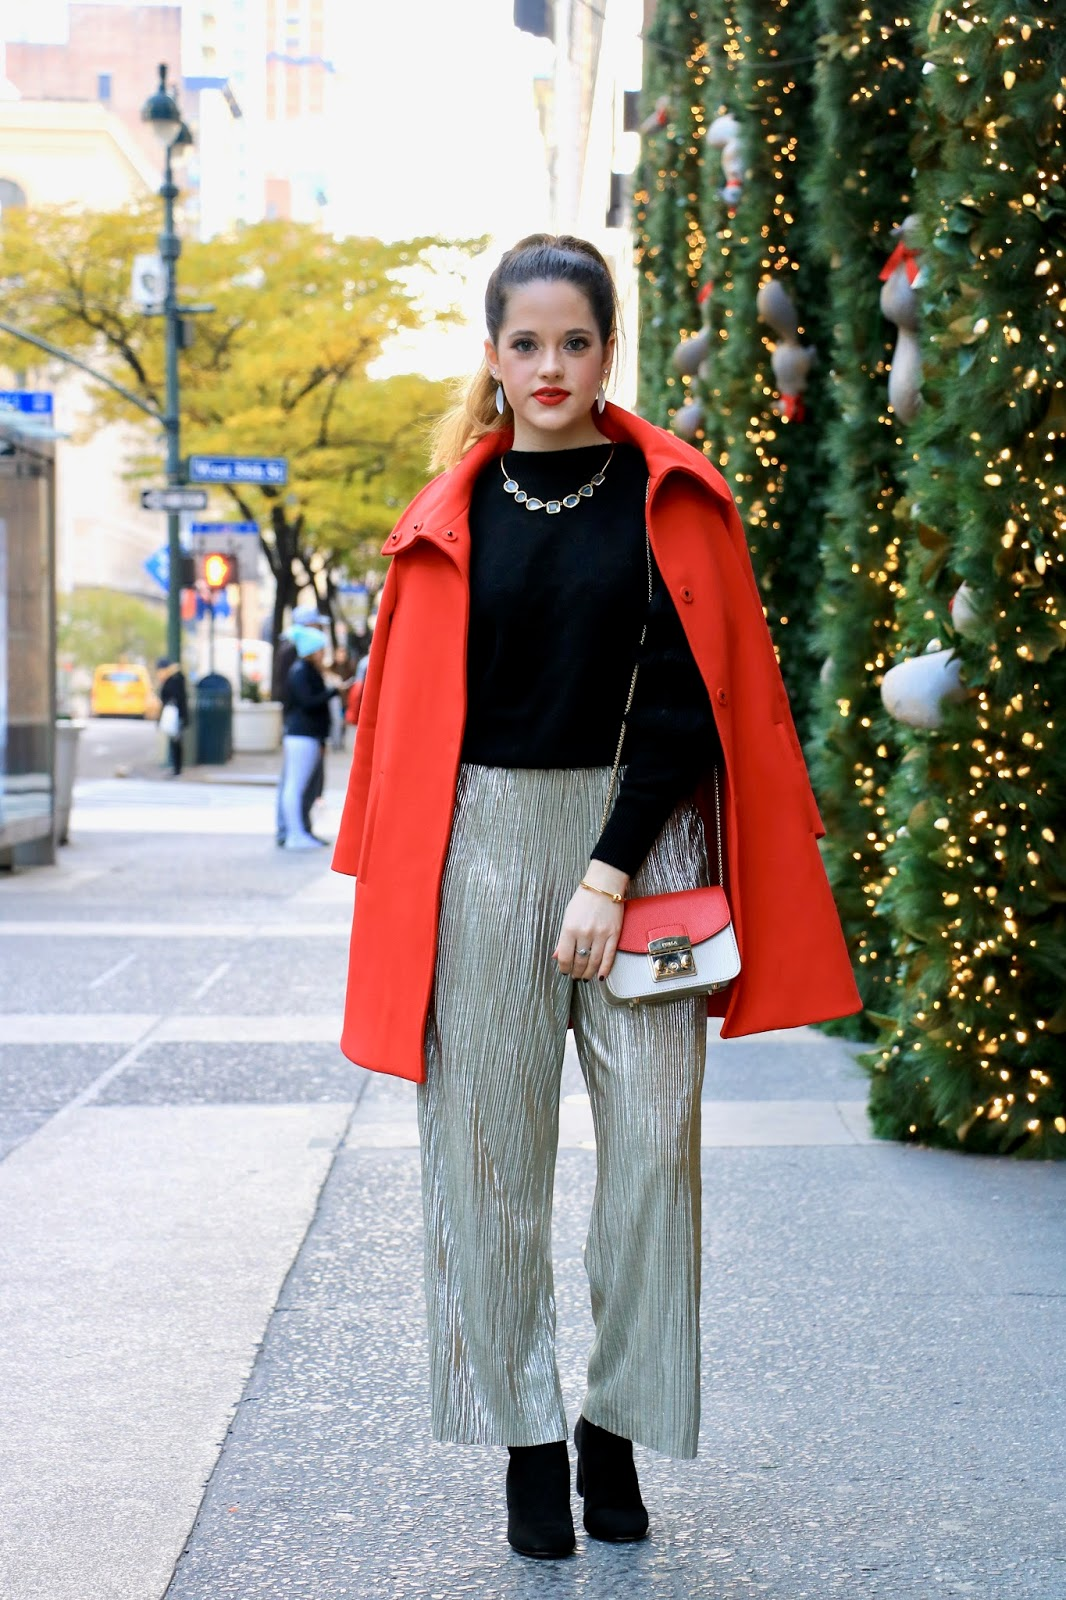 Nyc fashion blogger Kathleen Harper wearing a holiday outfit in 2017